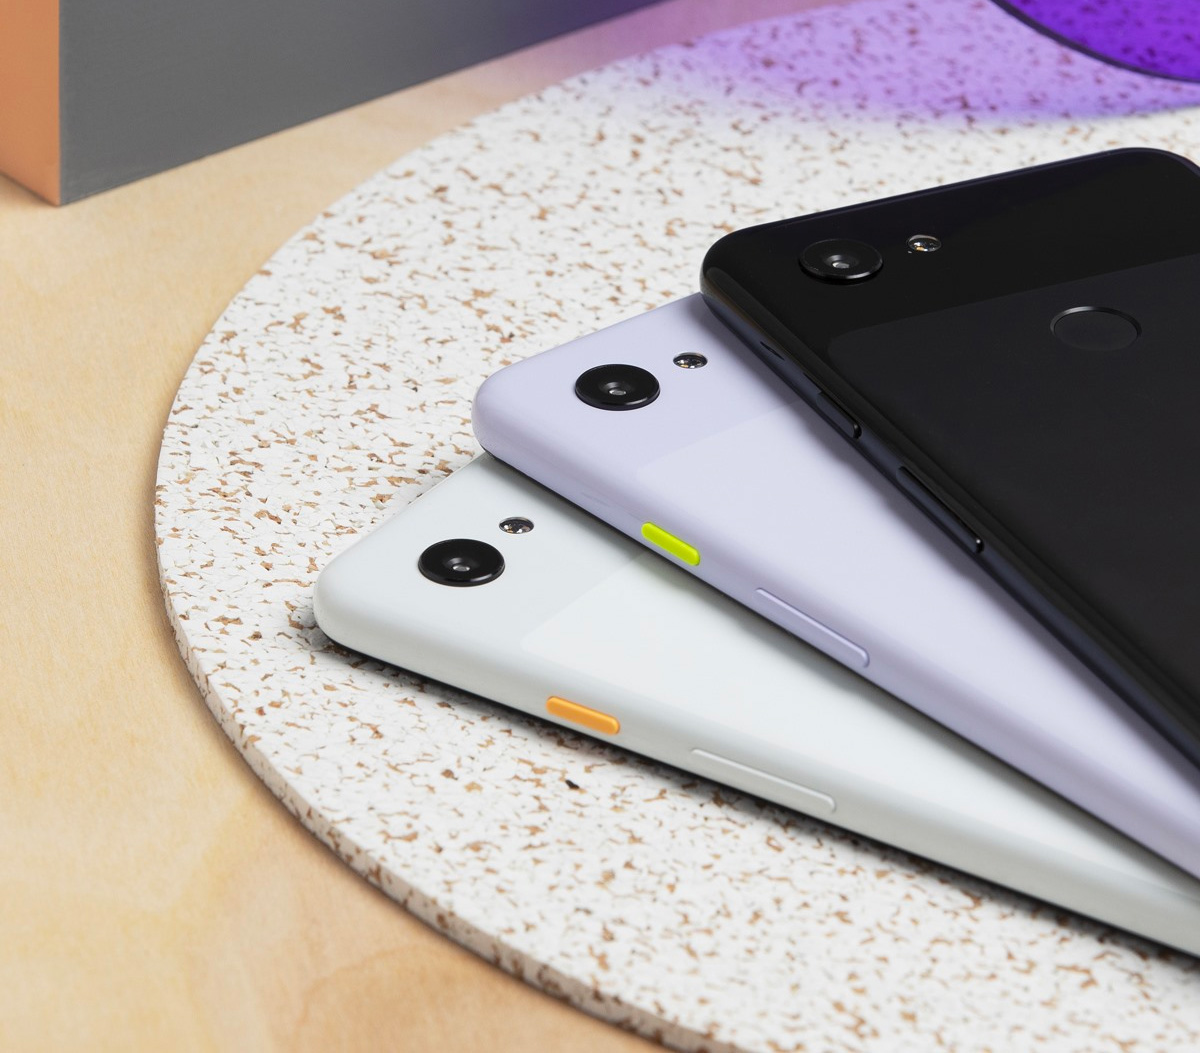 Google Introduces Pixel 3a & 3a XL Phones at werd.com